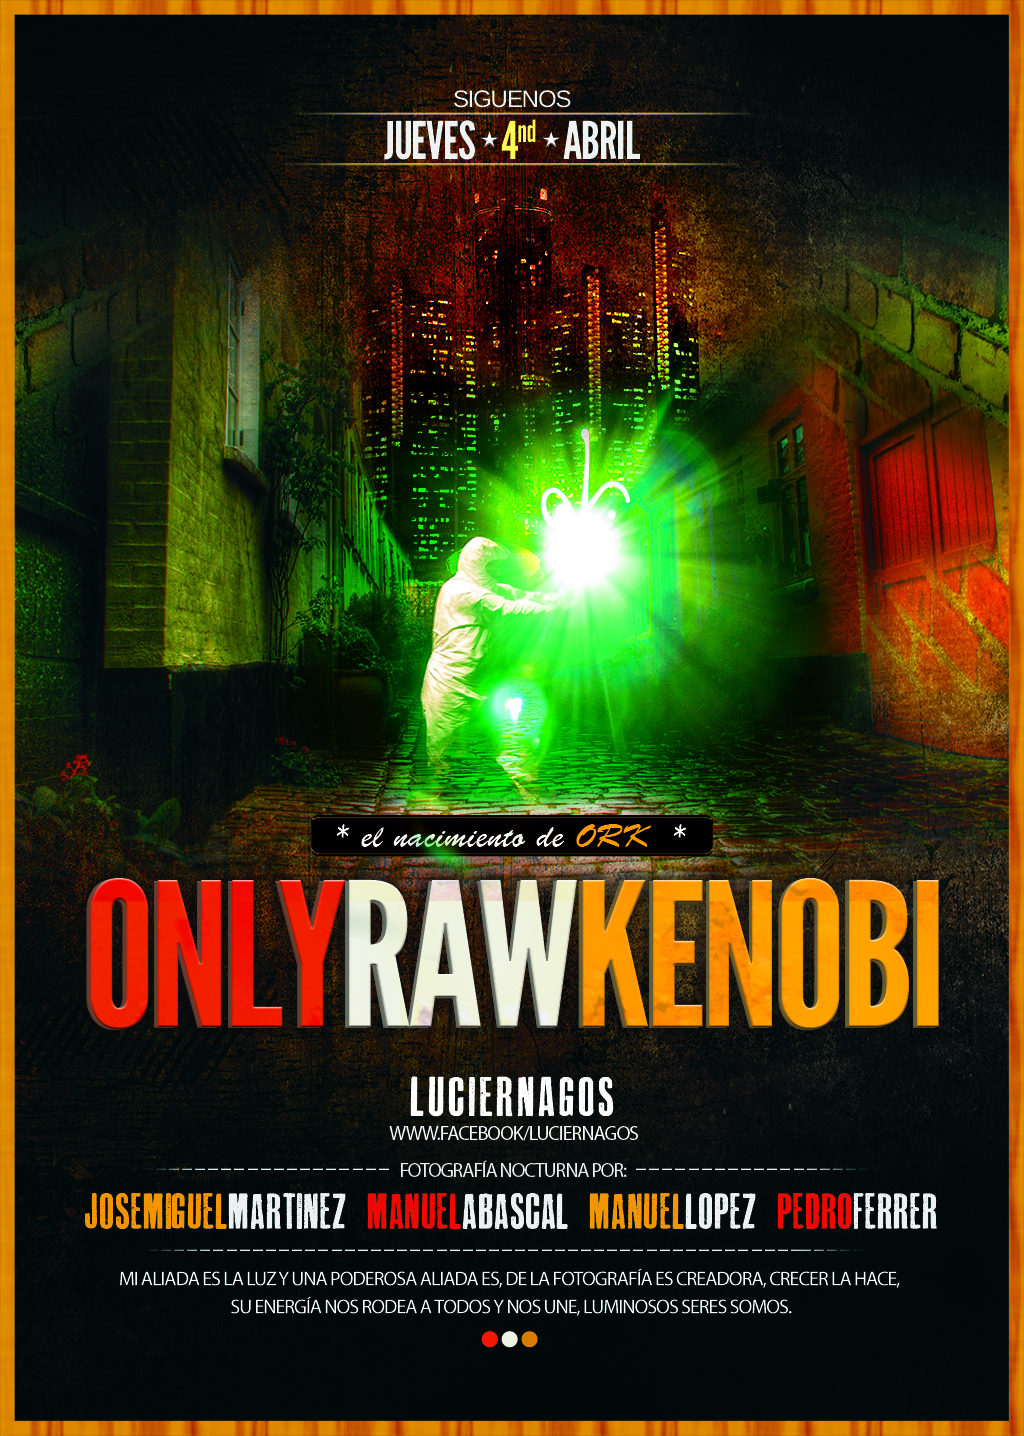 Only Raw Kenobi - próximamente